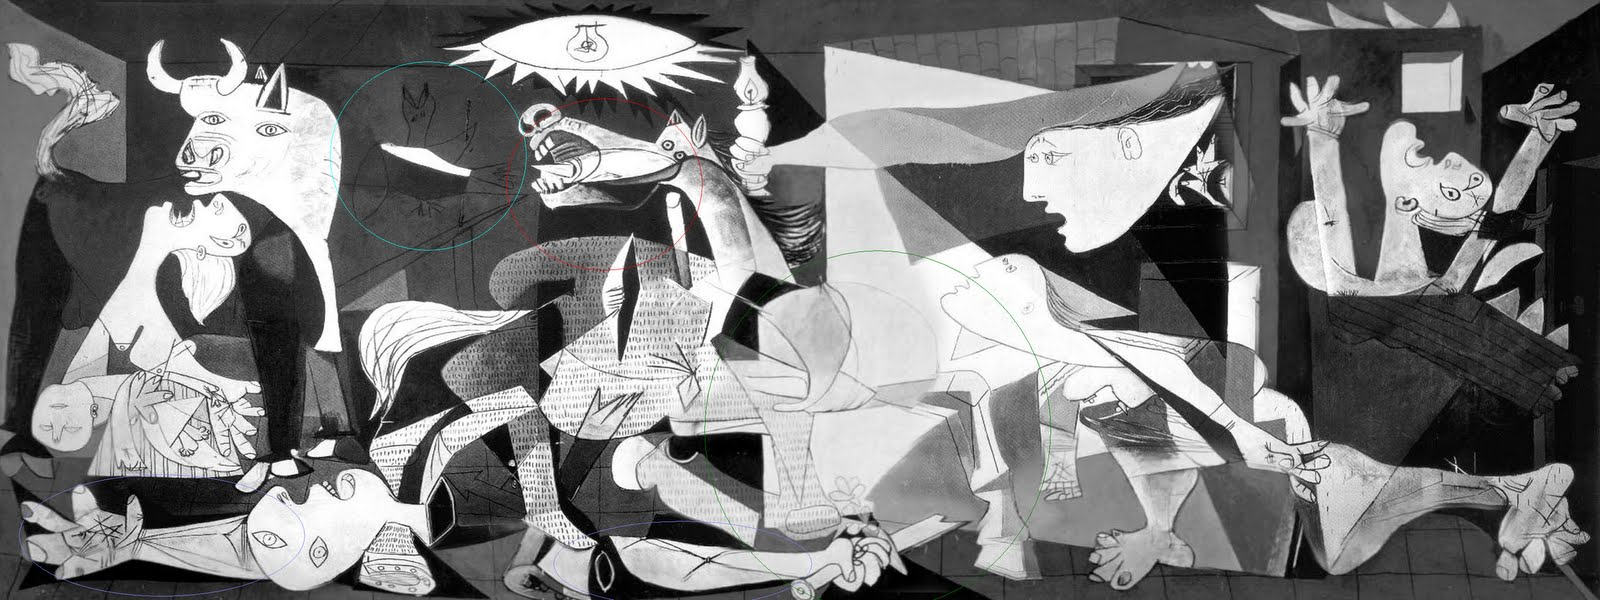 Stmhumanities picassos guernica pablo picassos guernica happens to be one of my favorite paintings so i decided to elaborate upon what we learned in class on thursday buycottarizona Gallery